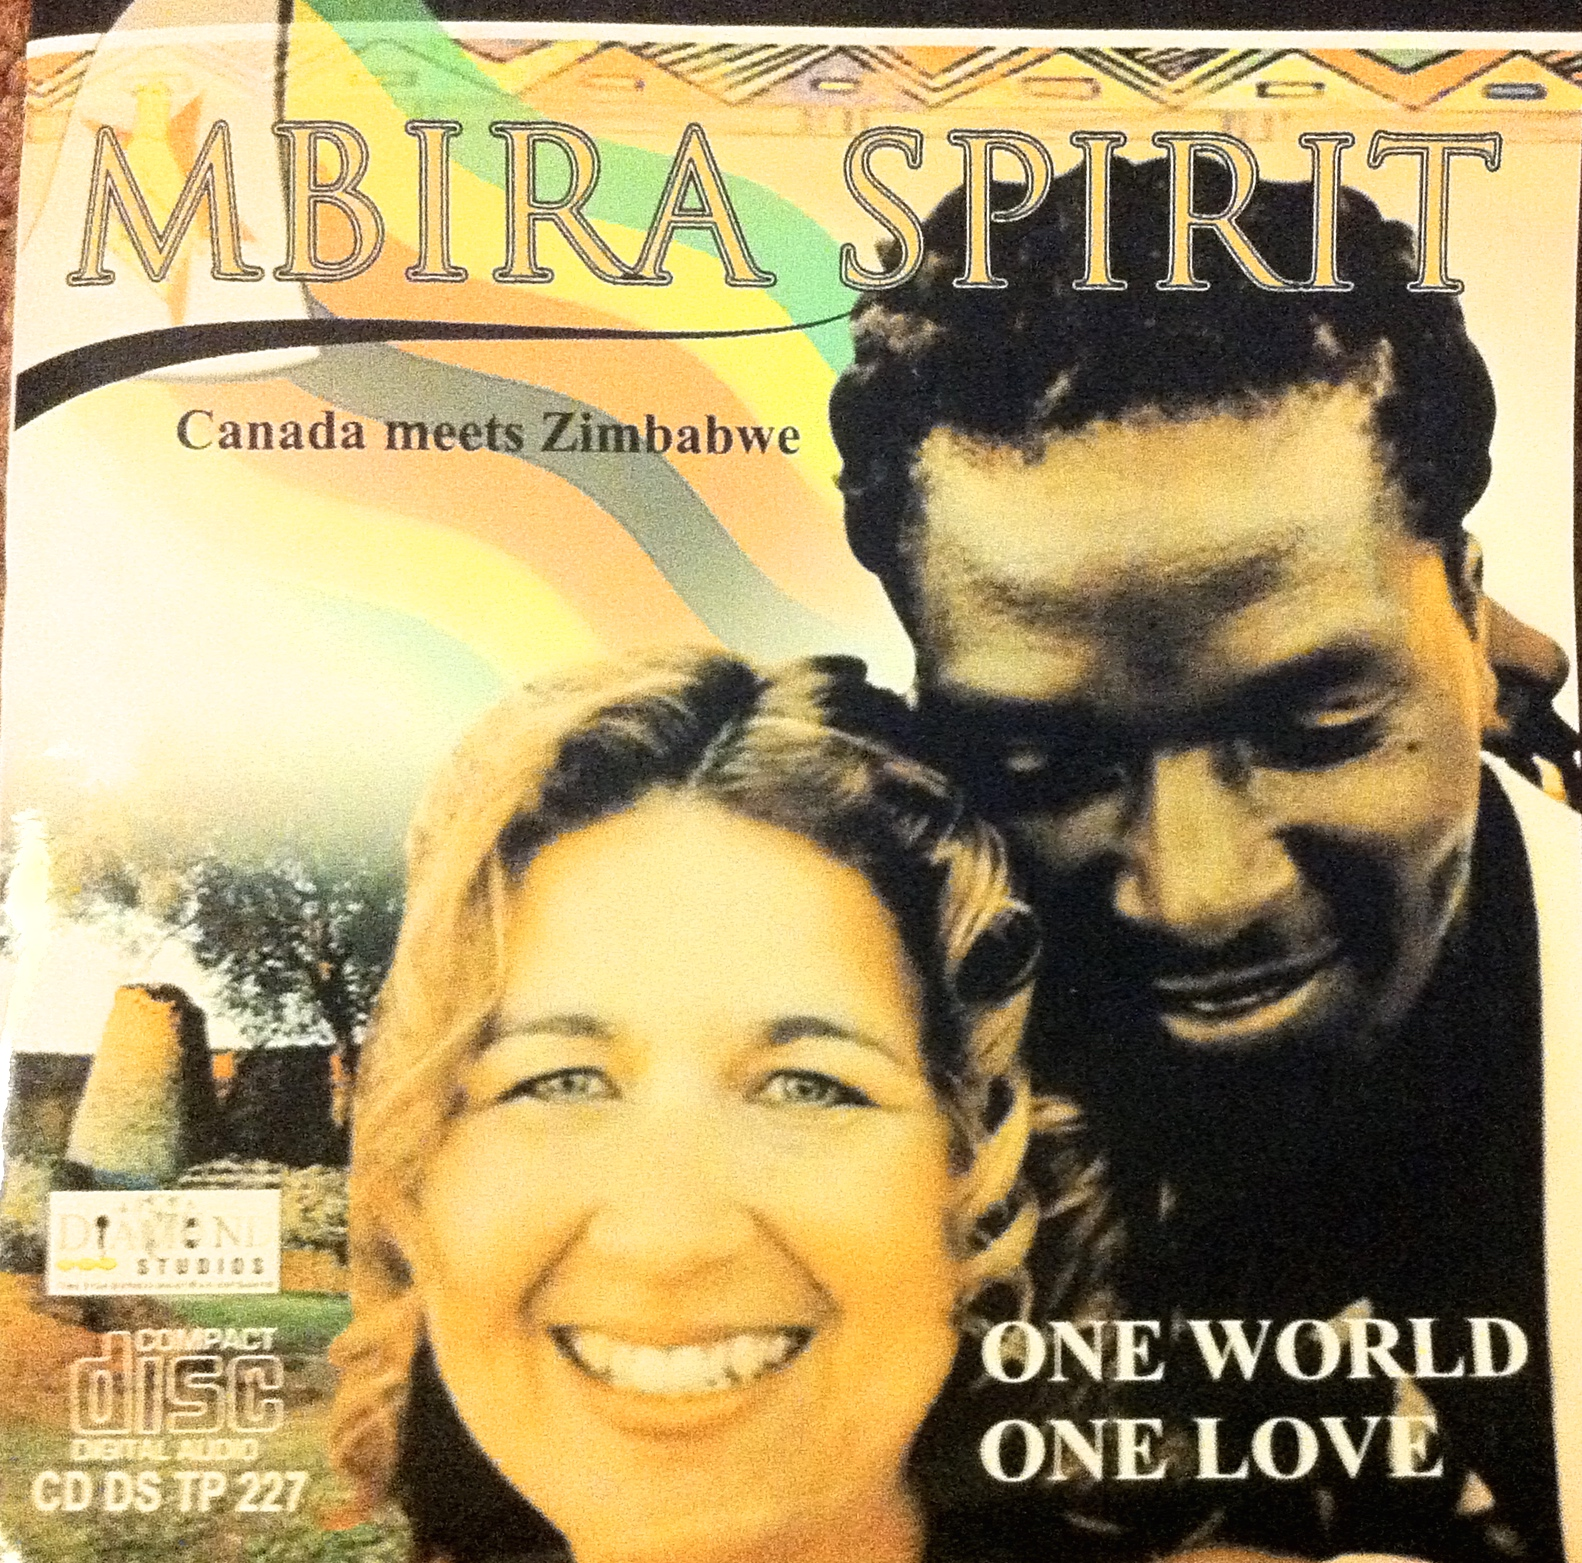 Visit the Mbira Spirit store by clicking here.